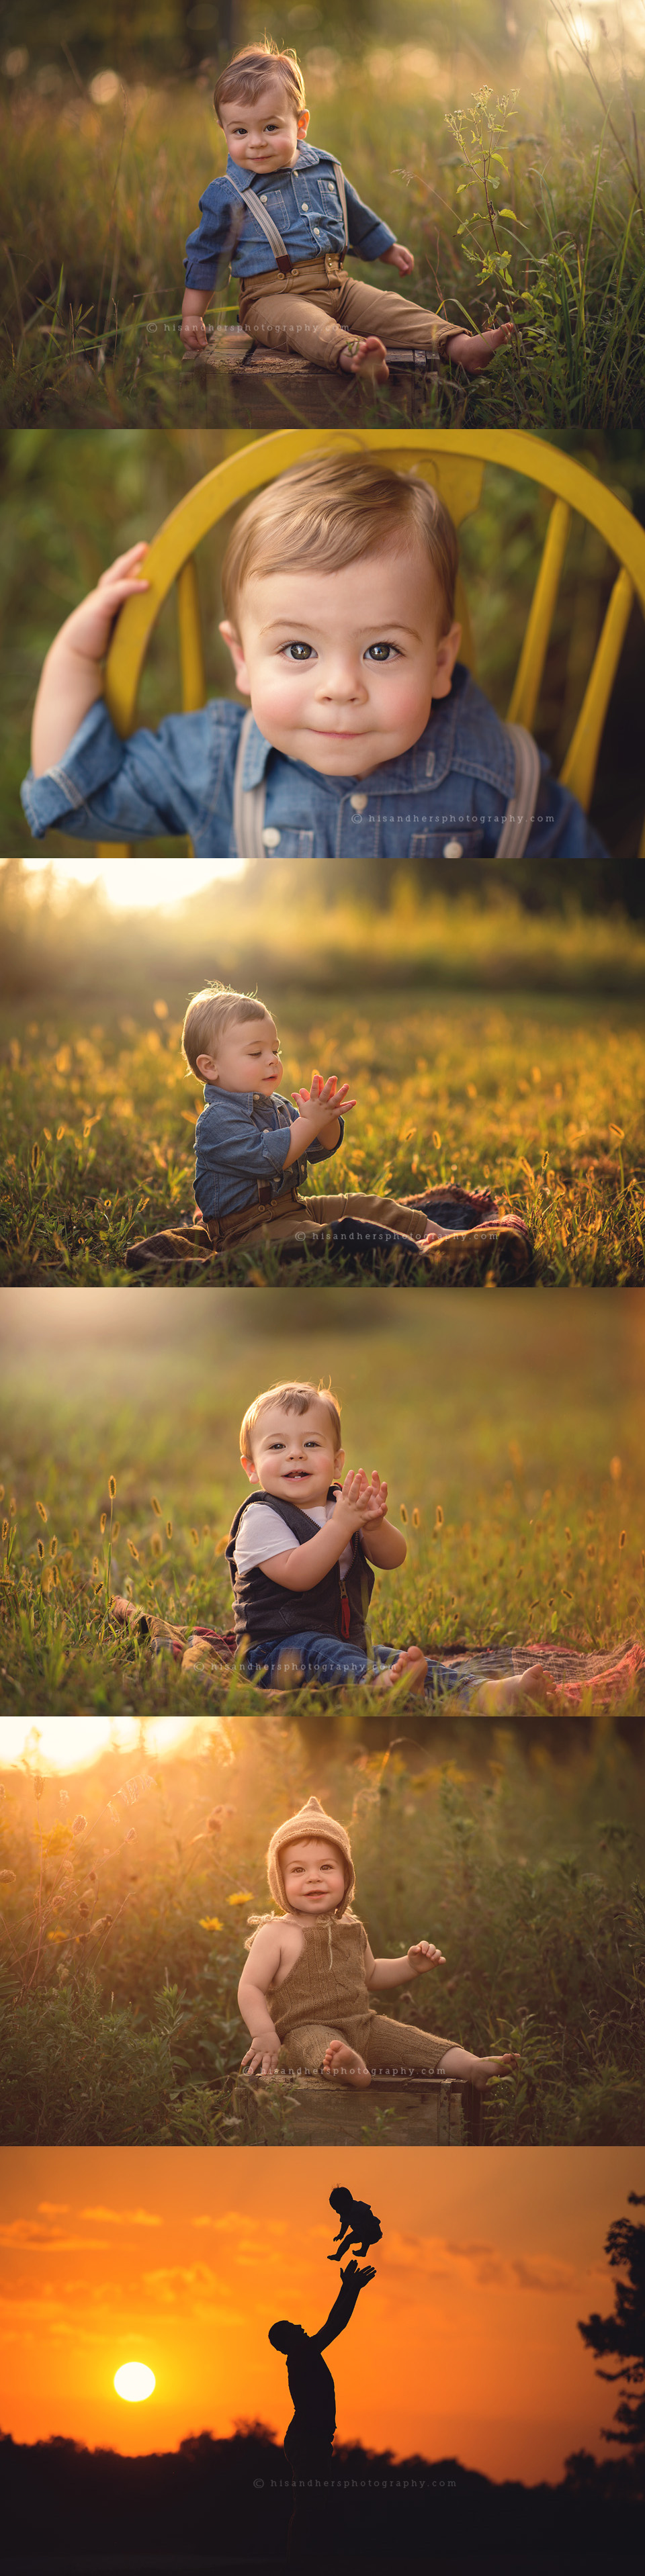 8 month 9 month 12 month 1 year pictures baby child photographer baby pictures des moines iowa